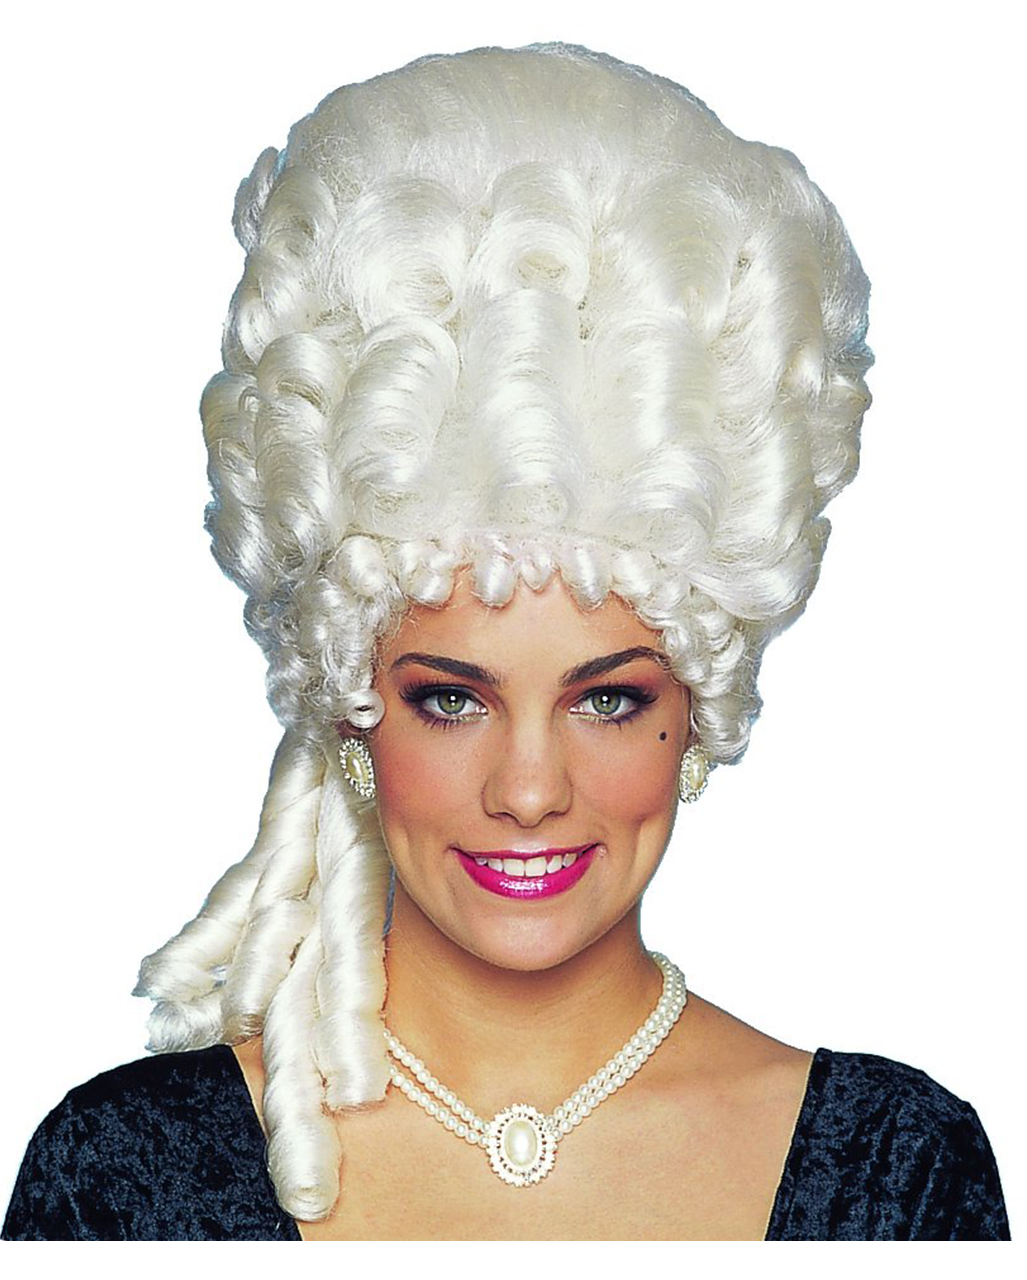 Marie Antoinette White Wig for Fancy Dress Costumes /& Outfits Accessory